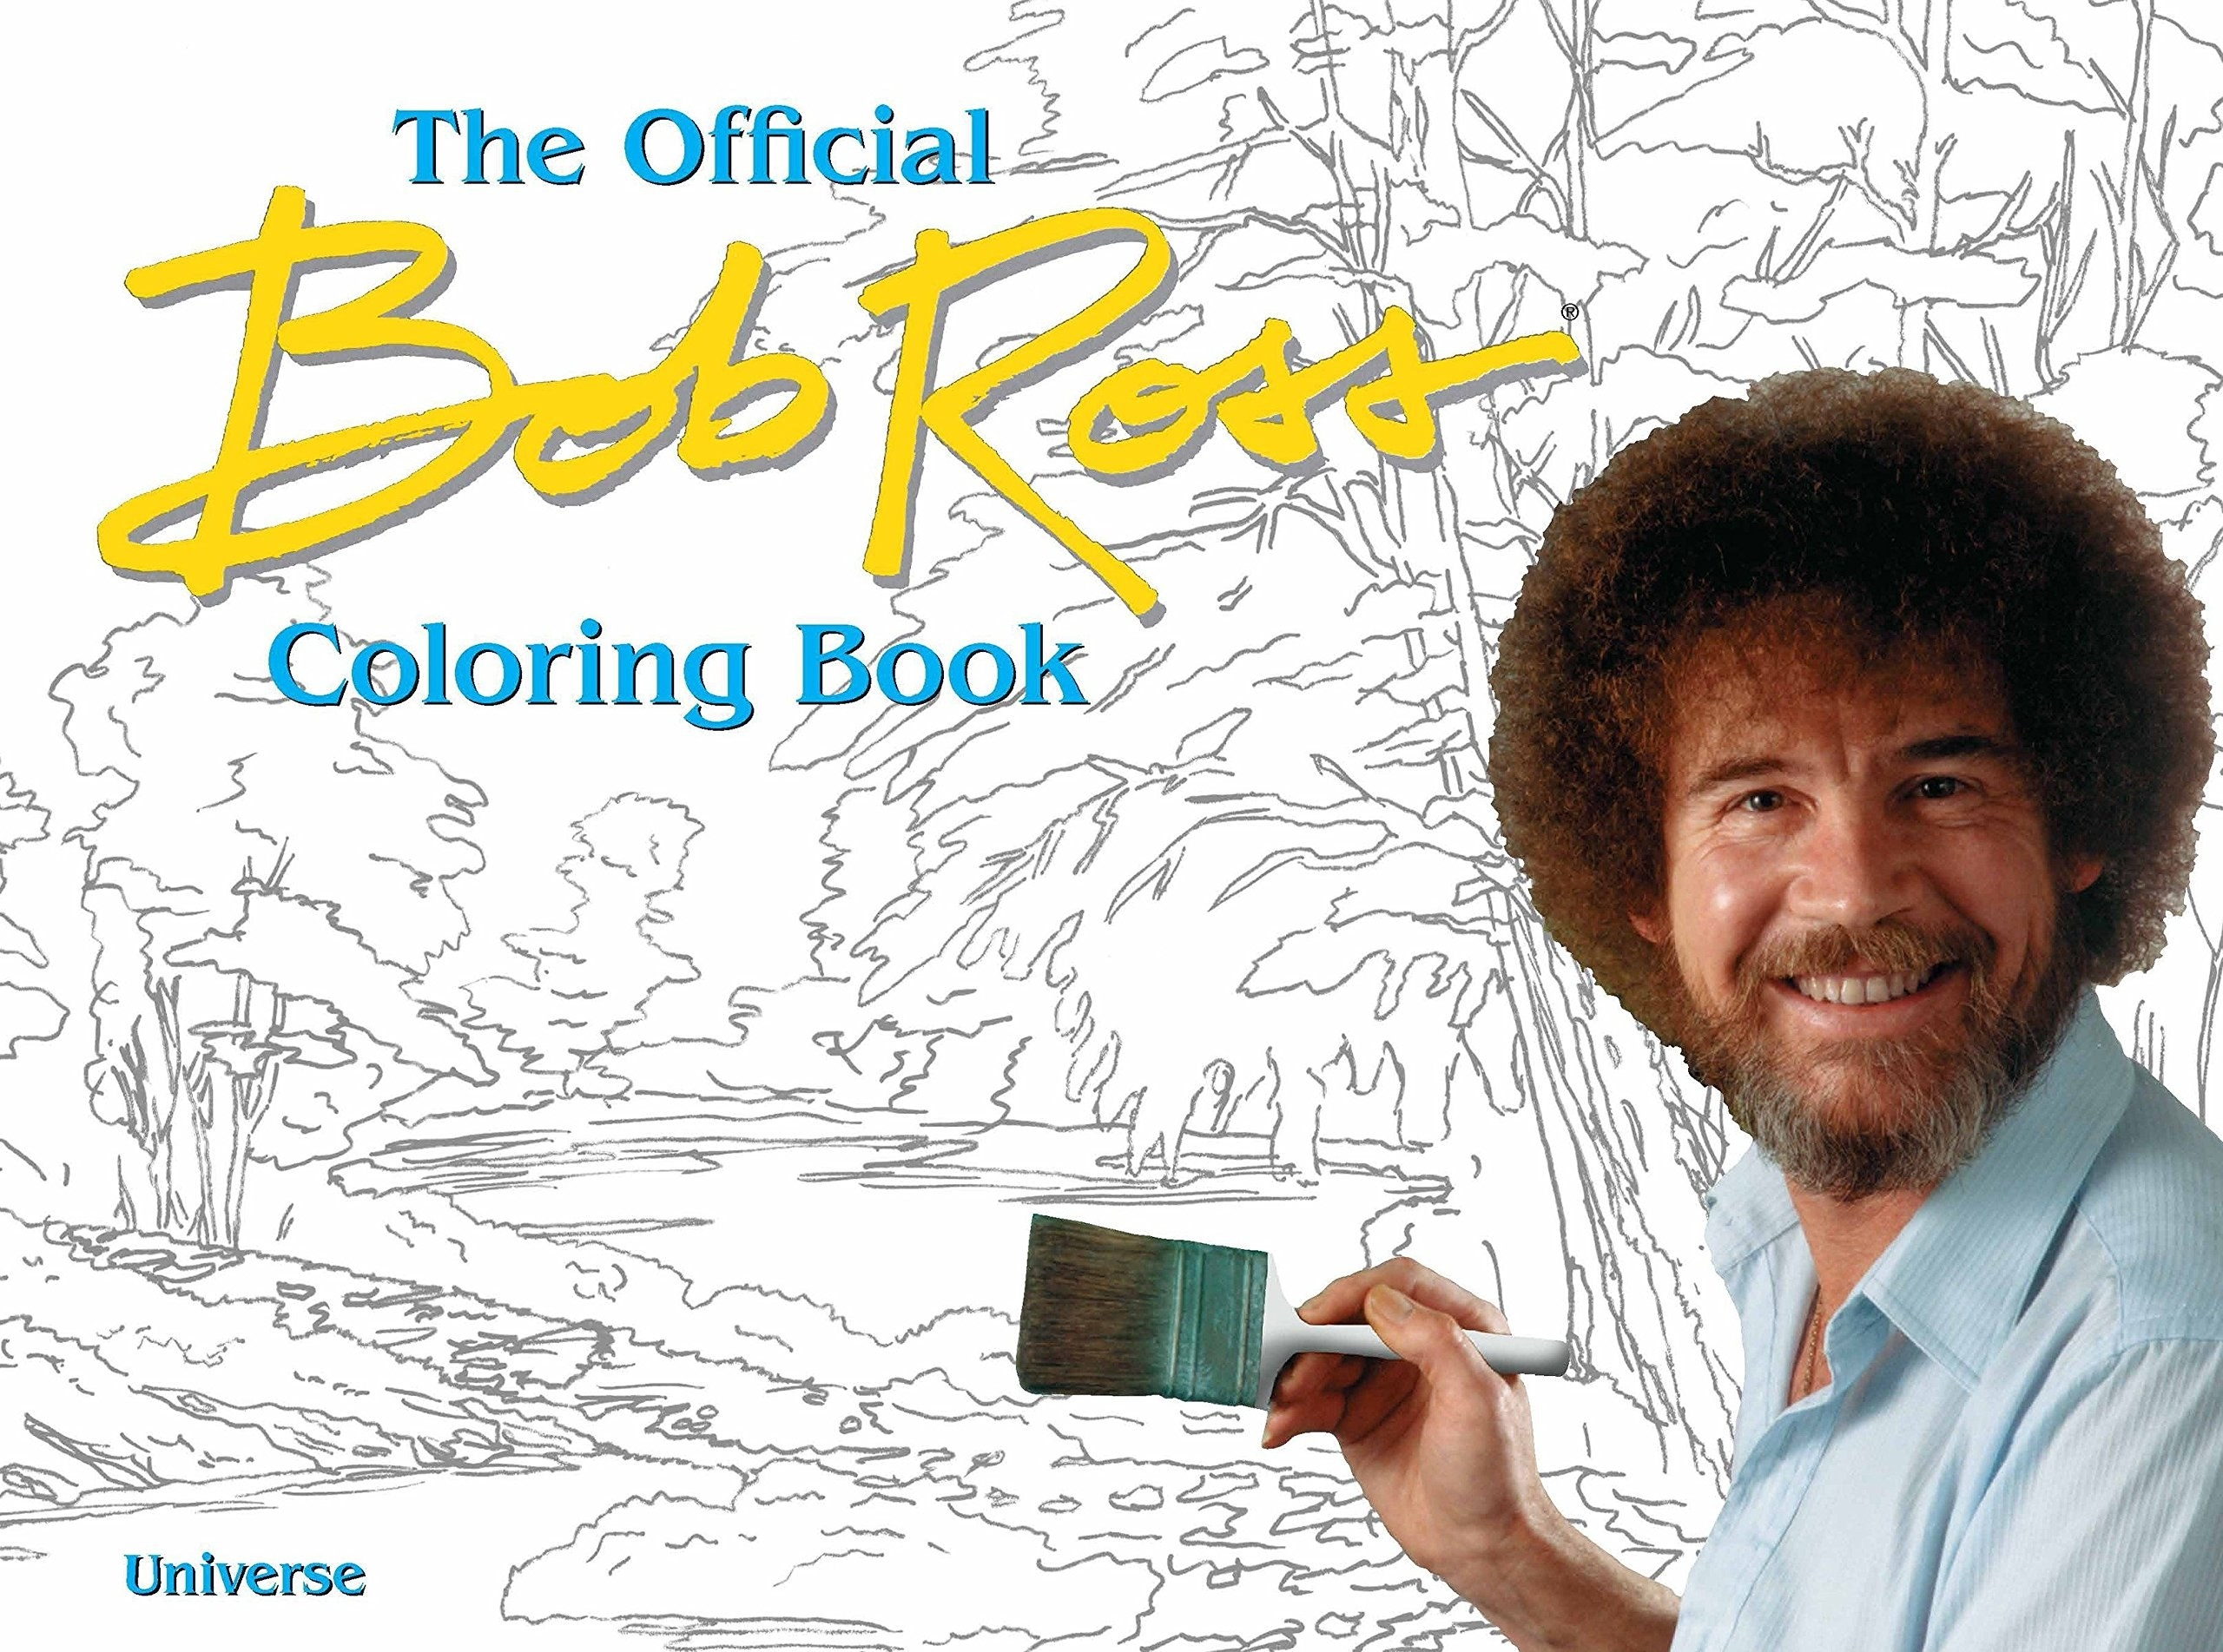 The cover of a colouring book